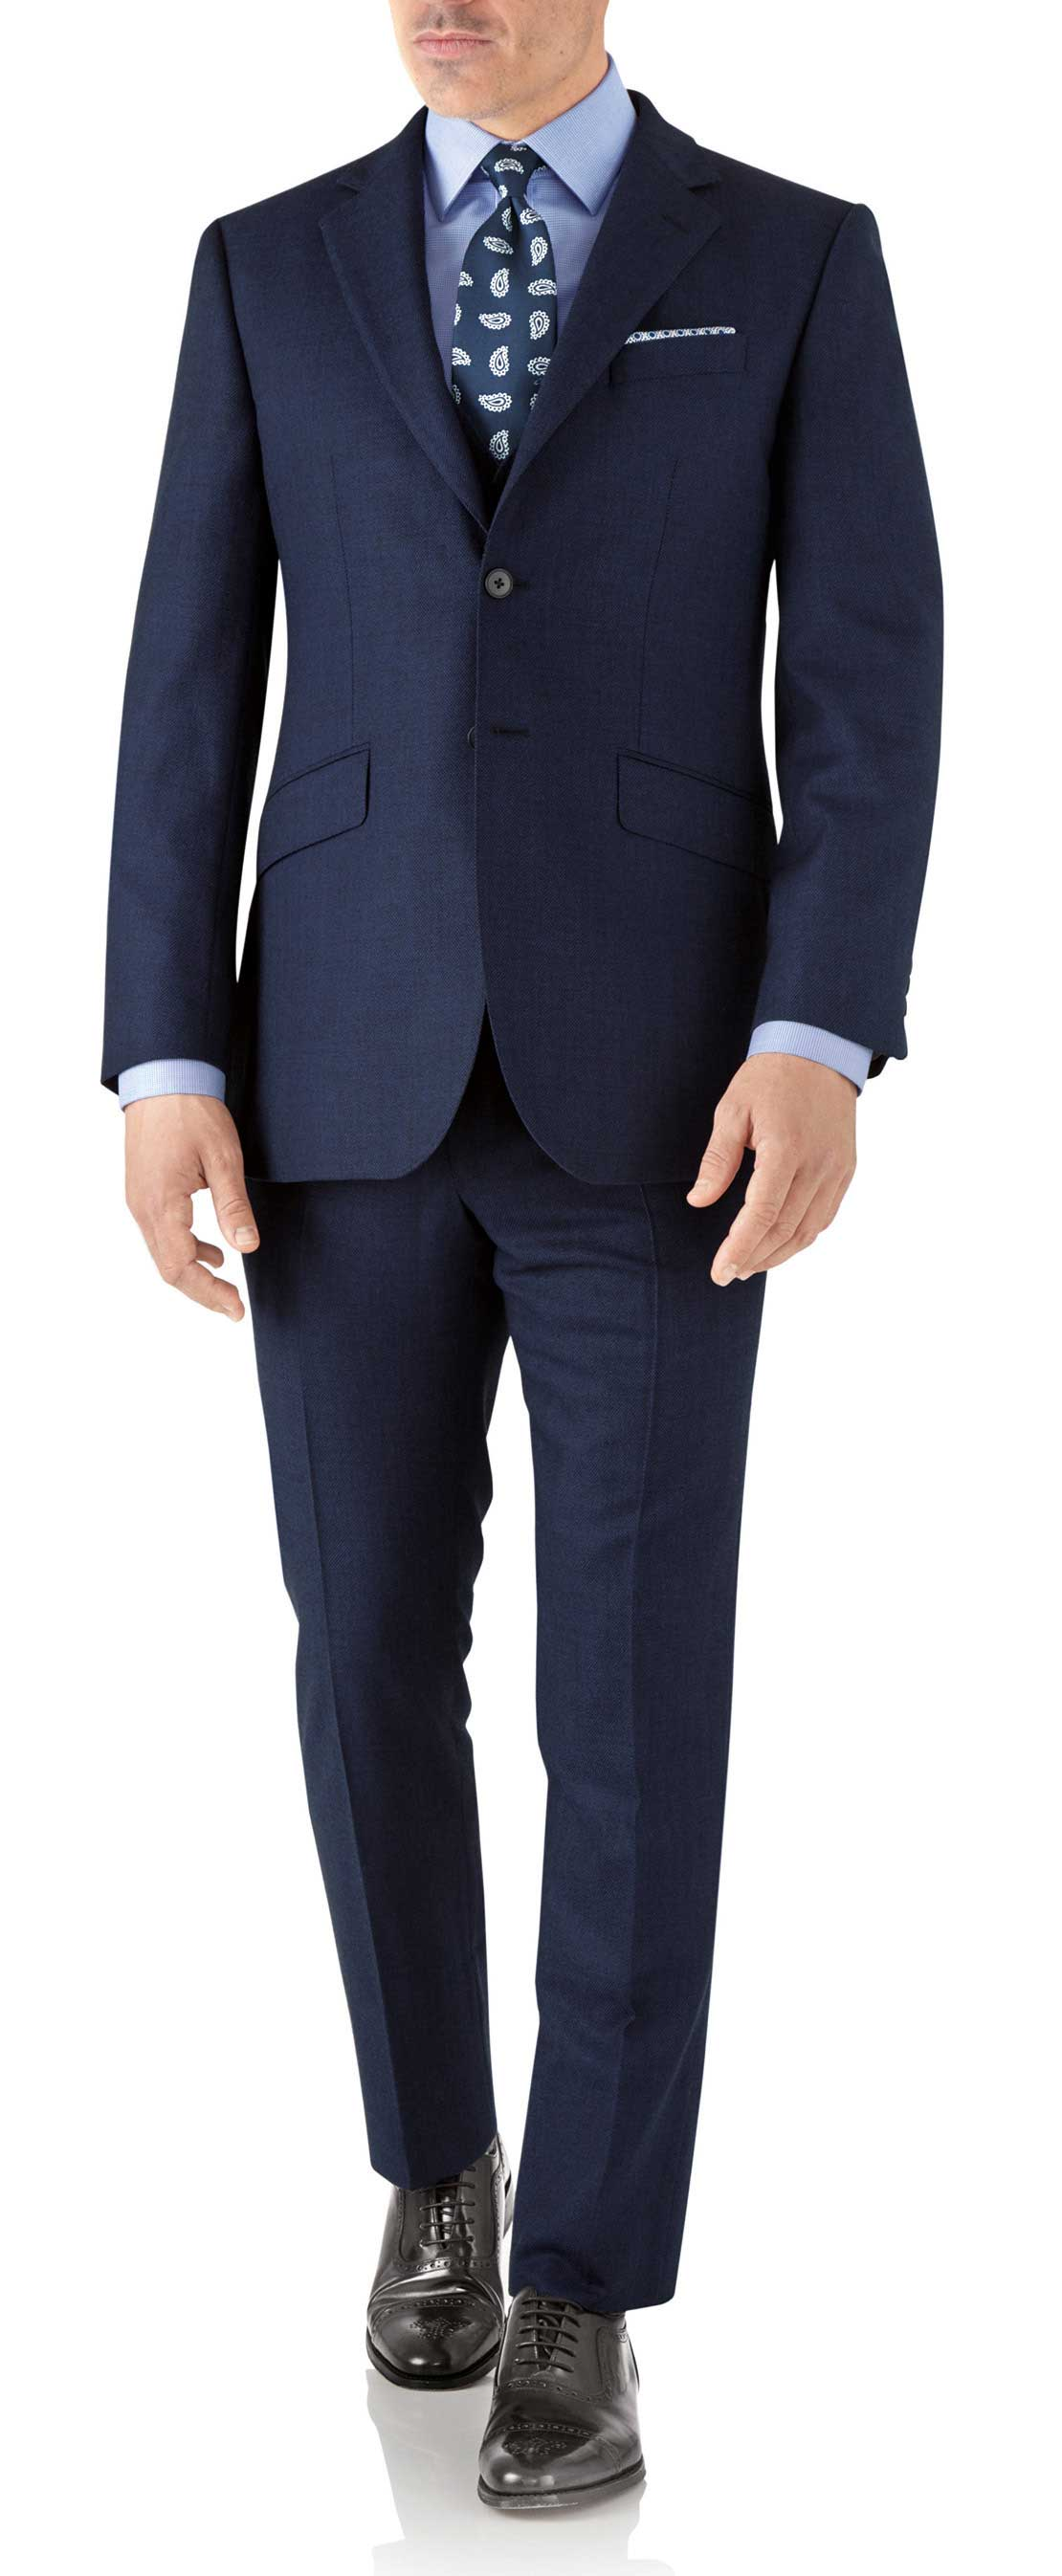 Veste de costume business bleu roi slim fit en flanelle